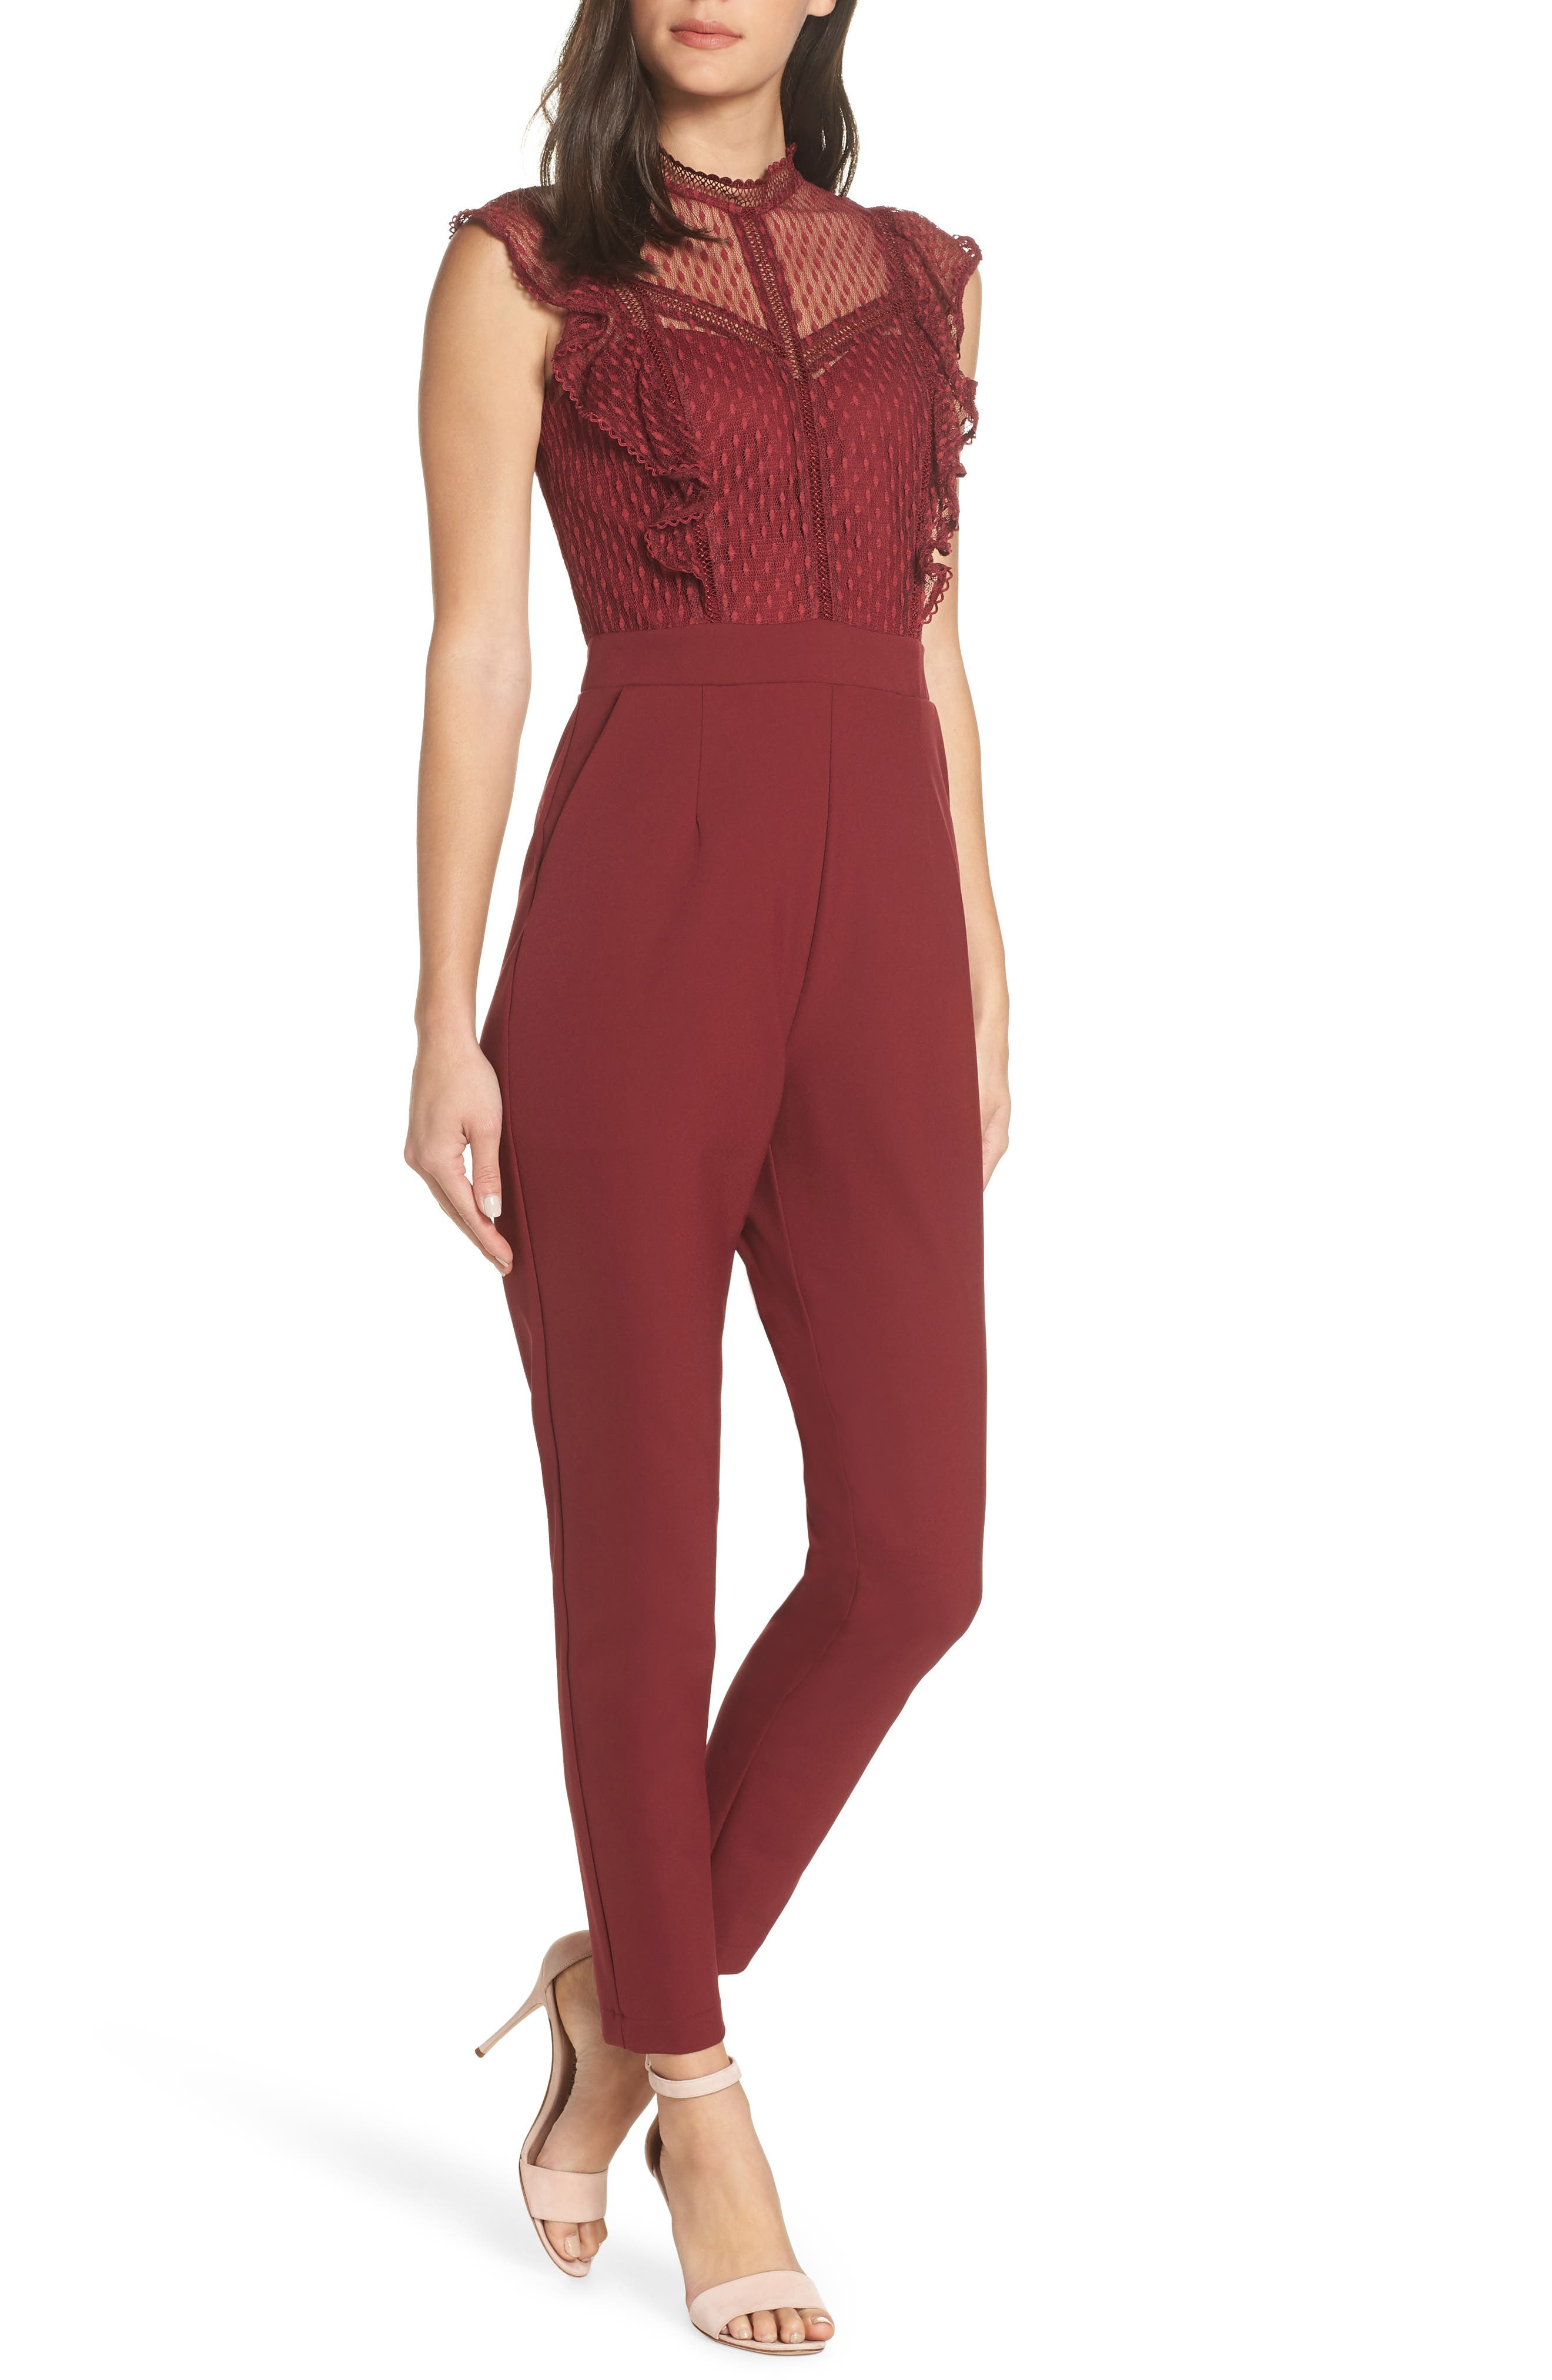 ADELYN RAE Grady Jumpsuit in Cabernet